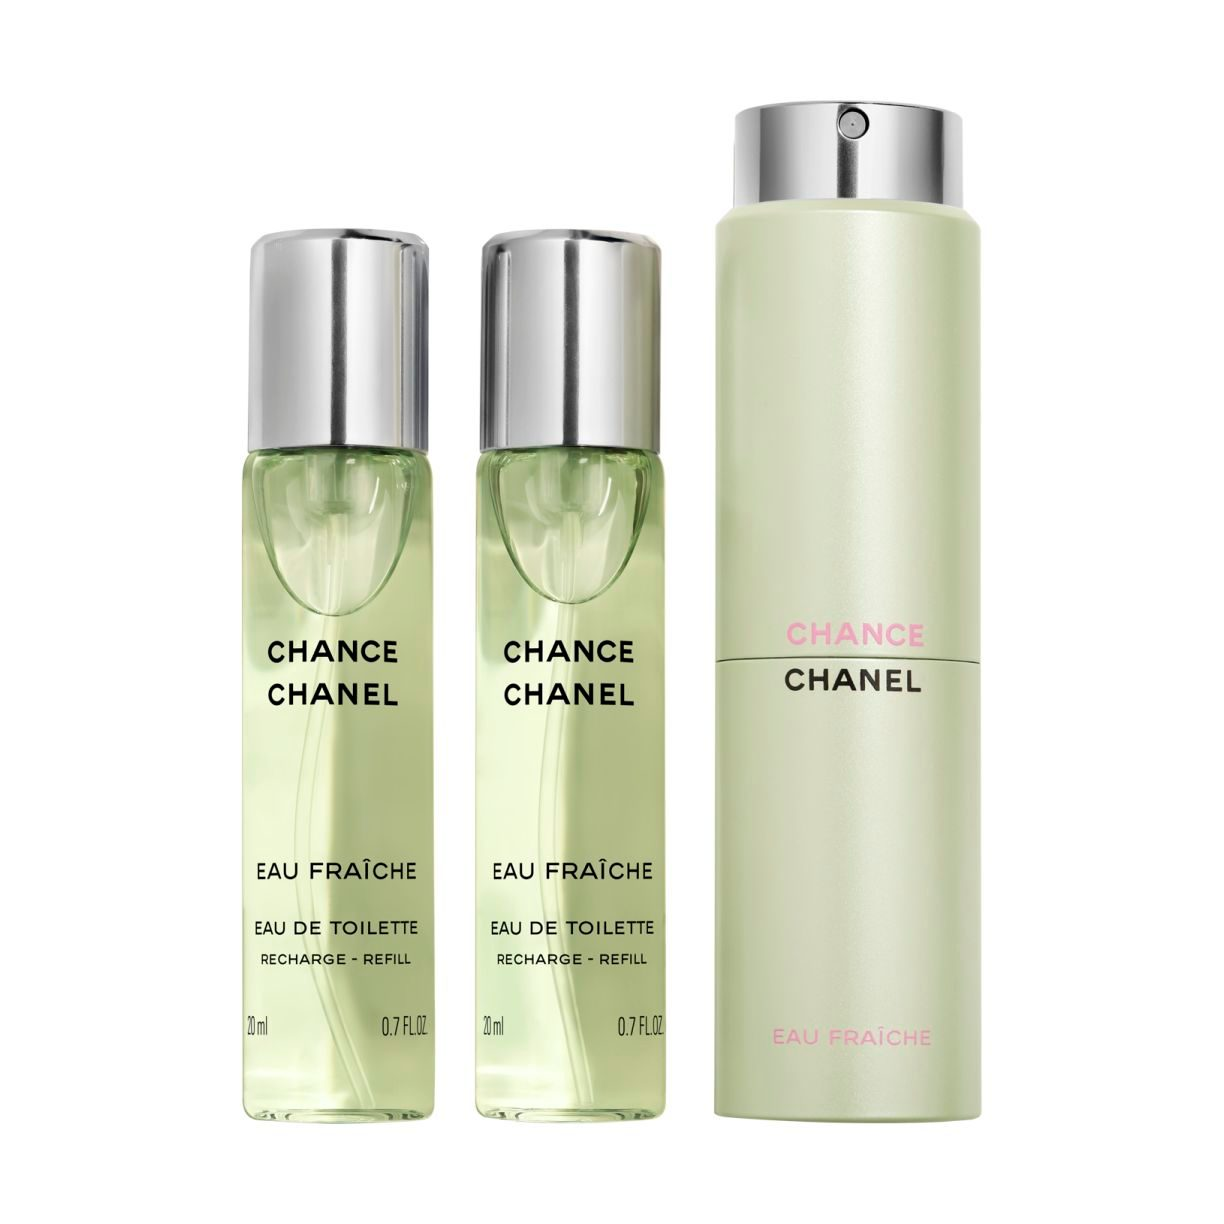 CHANCE EAU FRAÎCHE EAU DE TOILETTE TWIST AND SPRAY 3 X 20ML